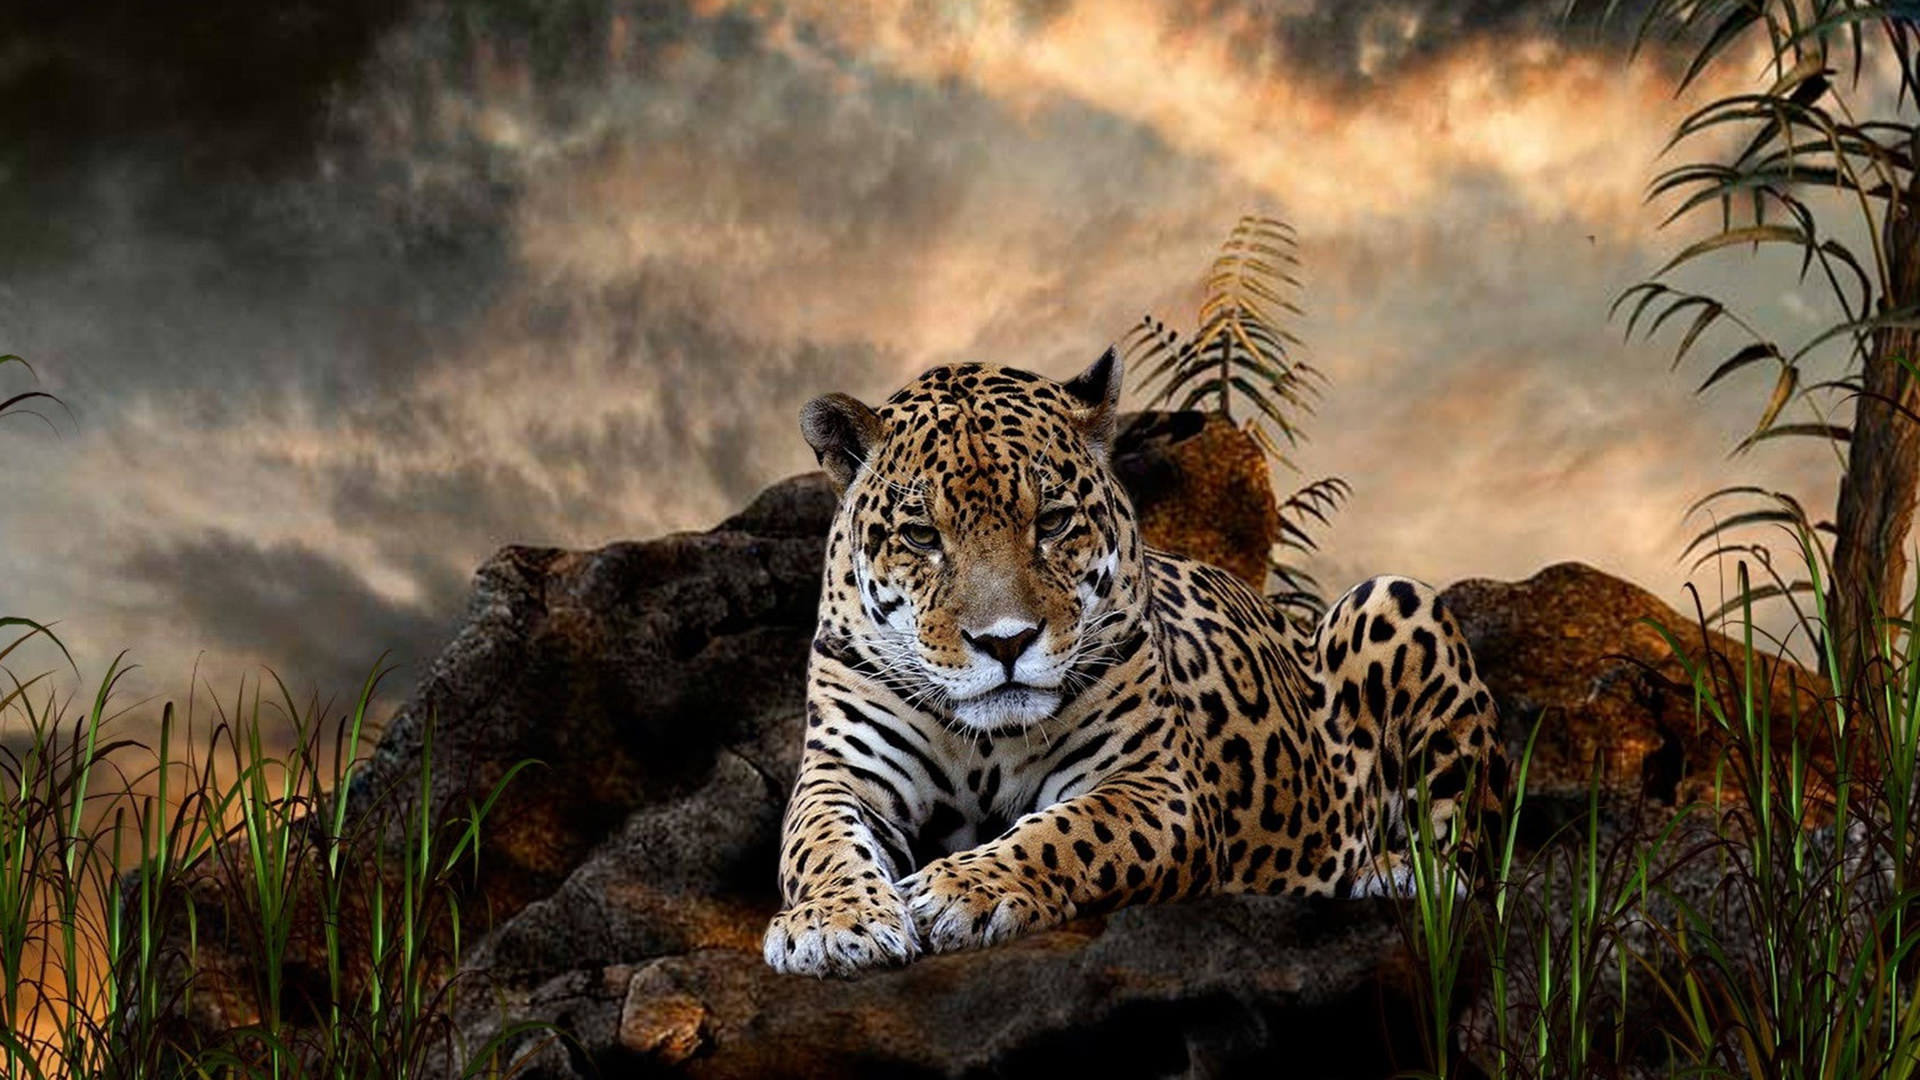 Animals Jaguars Wallpapers Hd Desktop And Mobile: Leopard Wallpapers HD